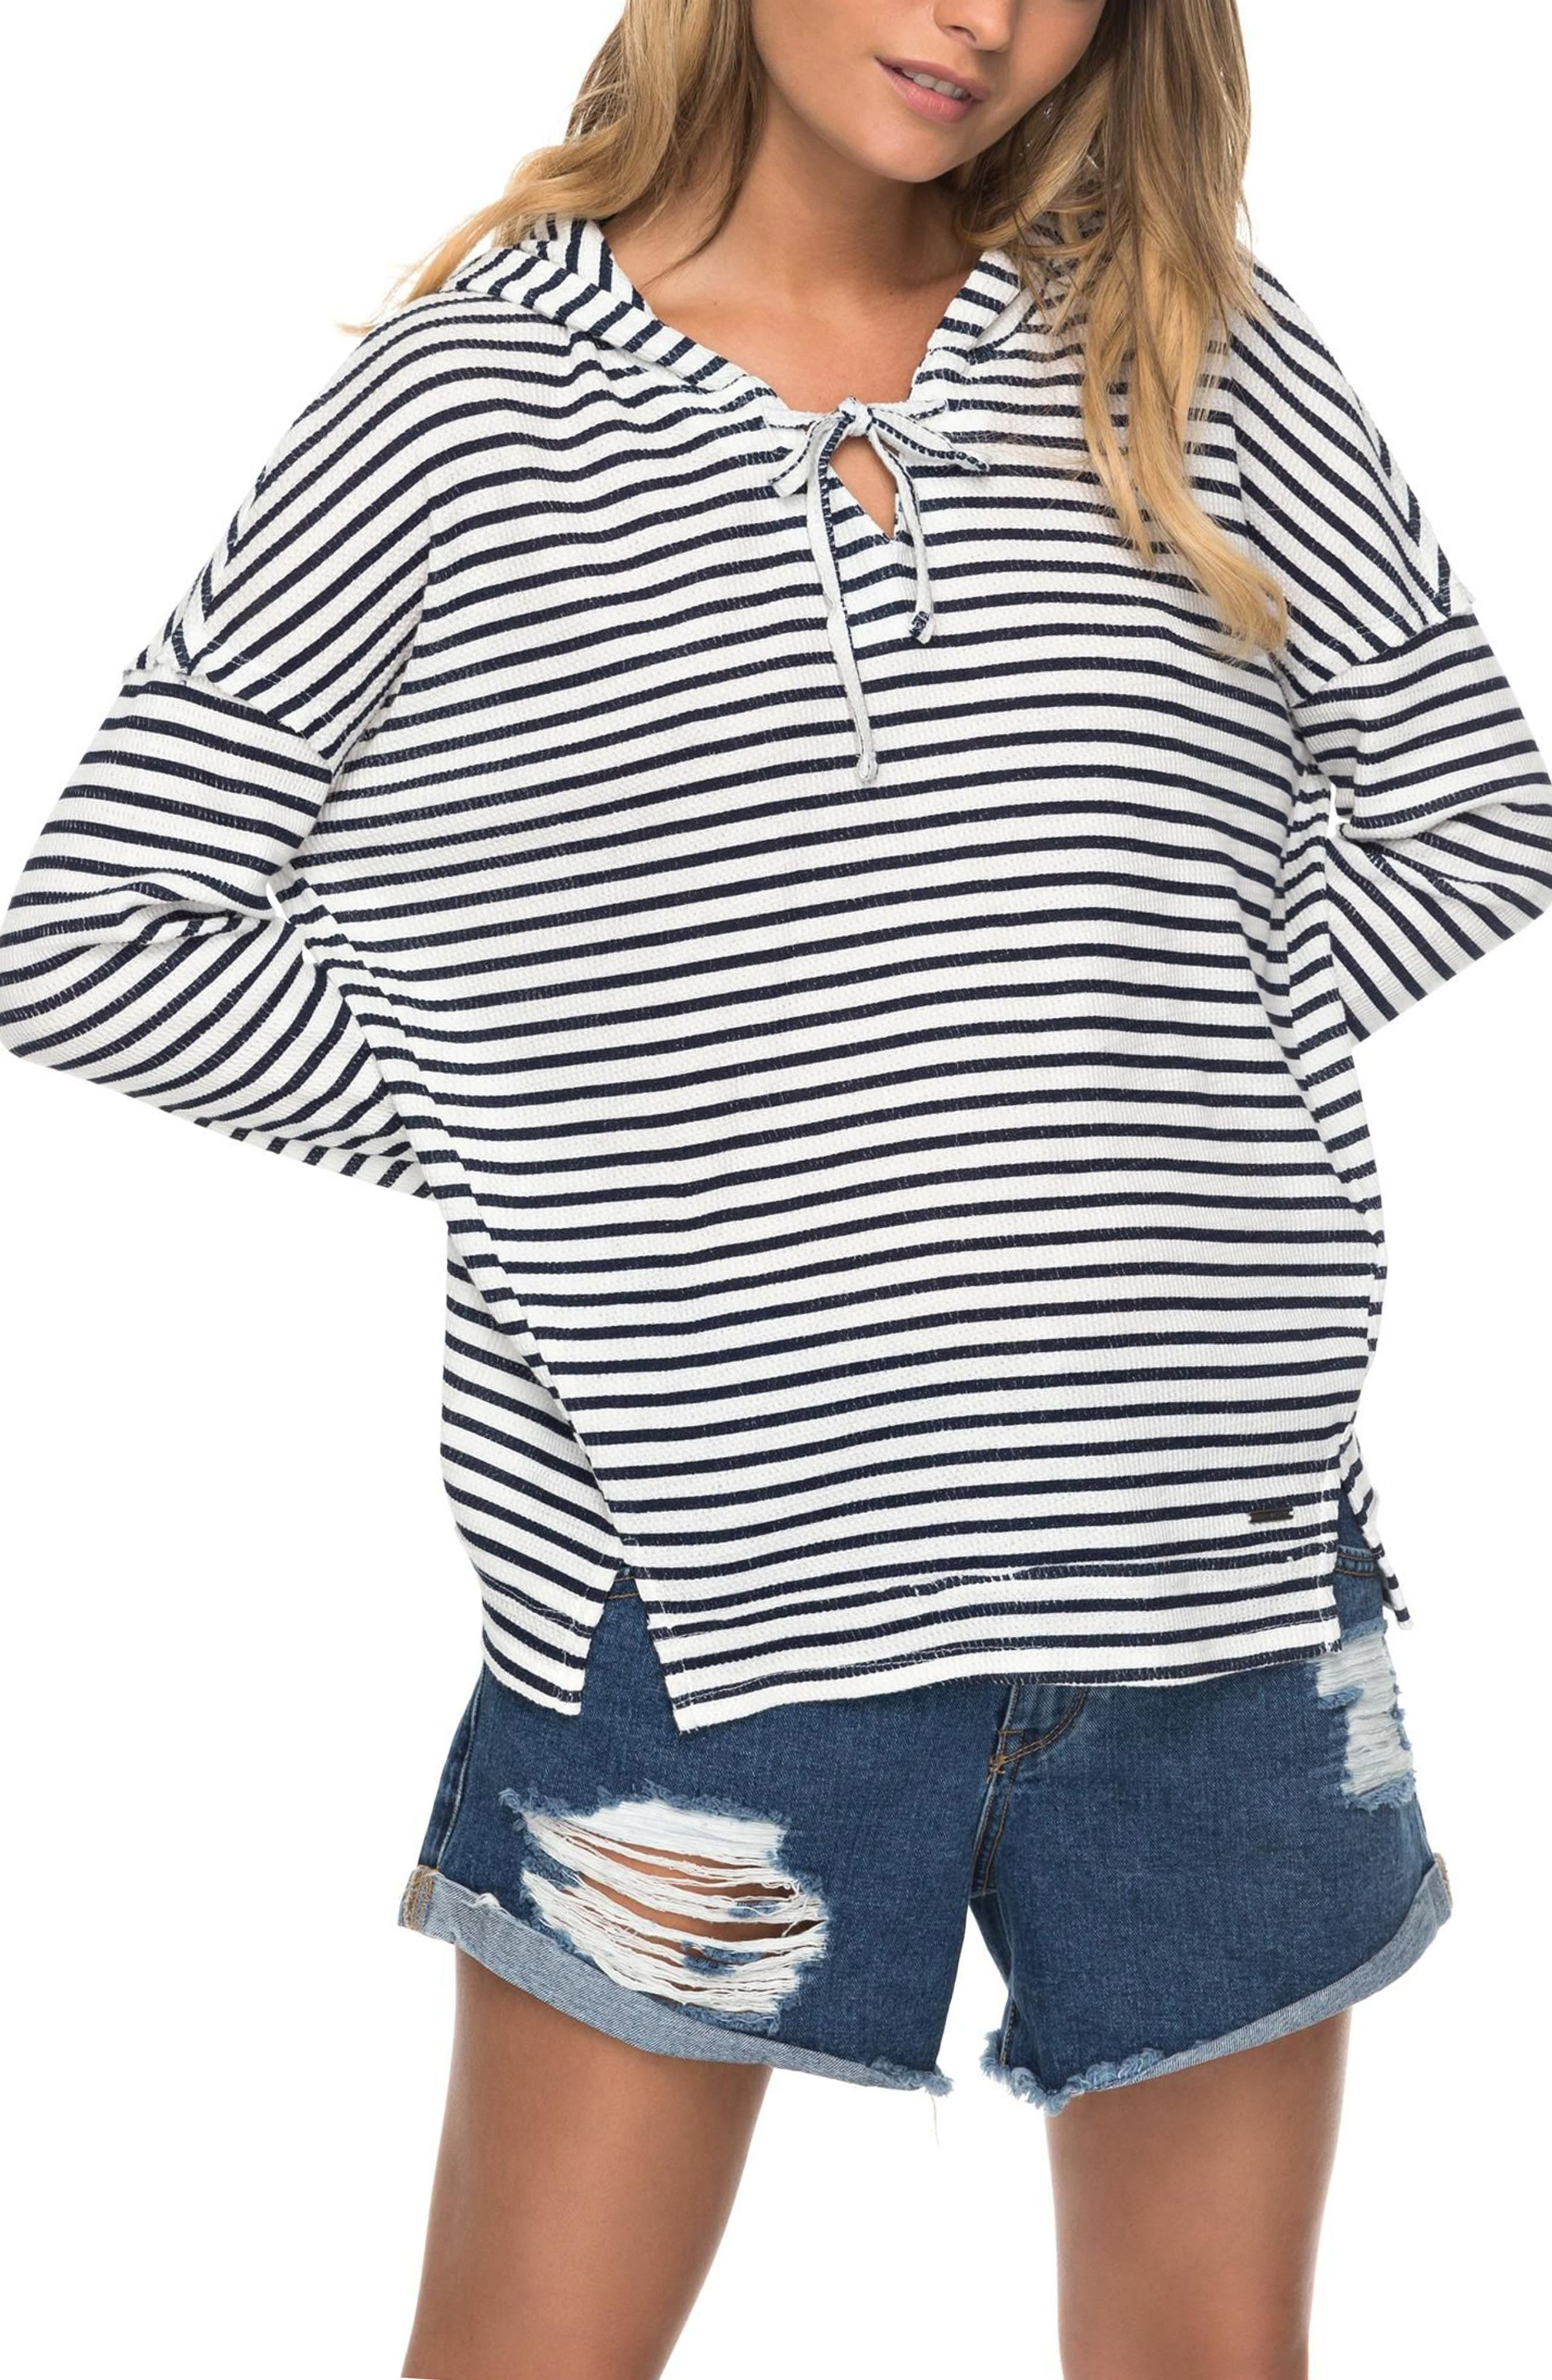 Wanted and Wild Thermal Hooded Top,                             Main thumbnail 1, color,                             Marshmallow Classic Stripe Vol